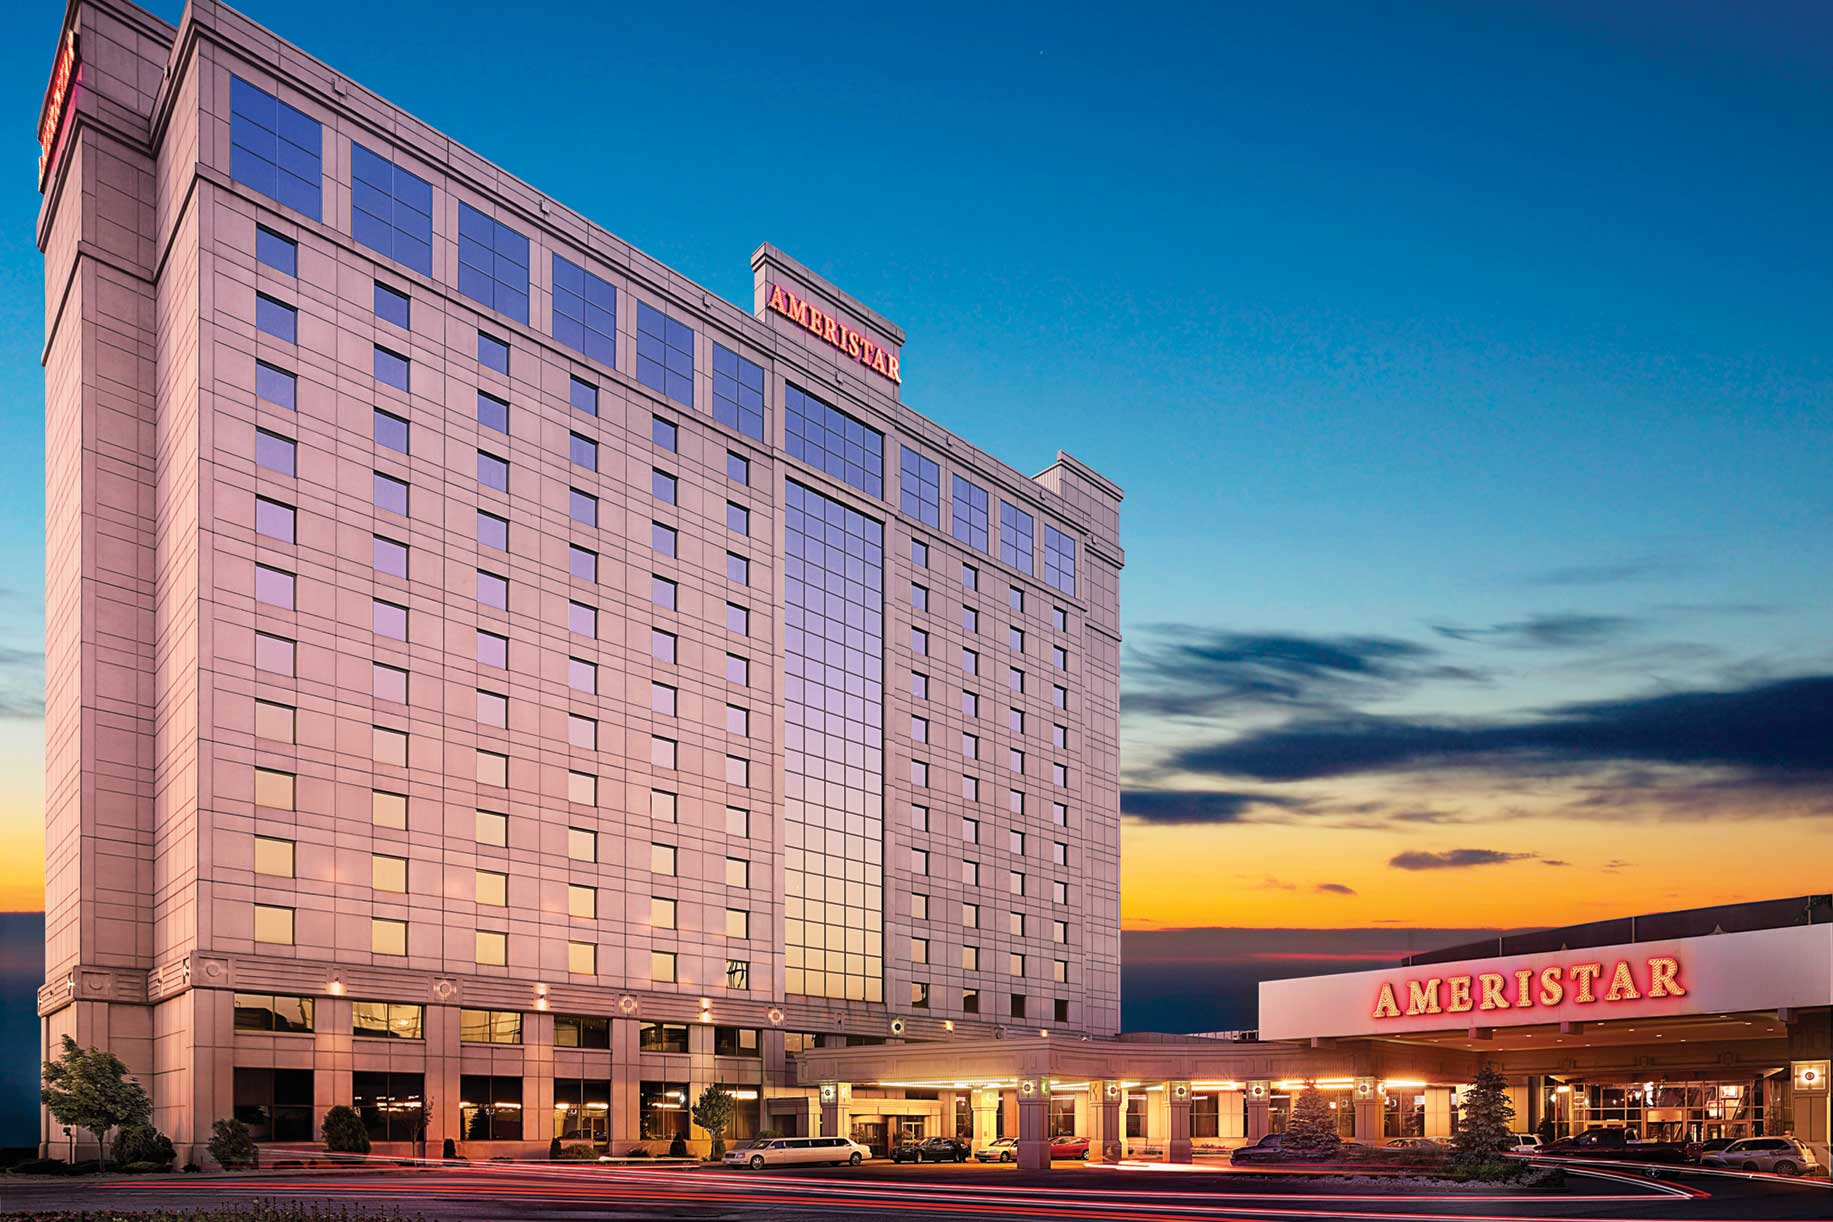 Ameristar Adds Live Table Games And Slots To Sportsbook Pavilion